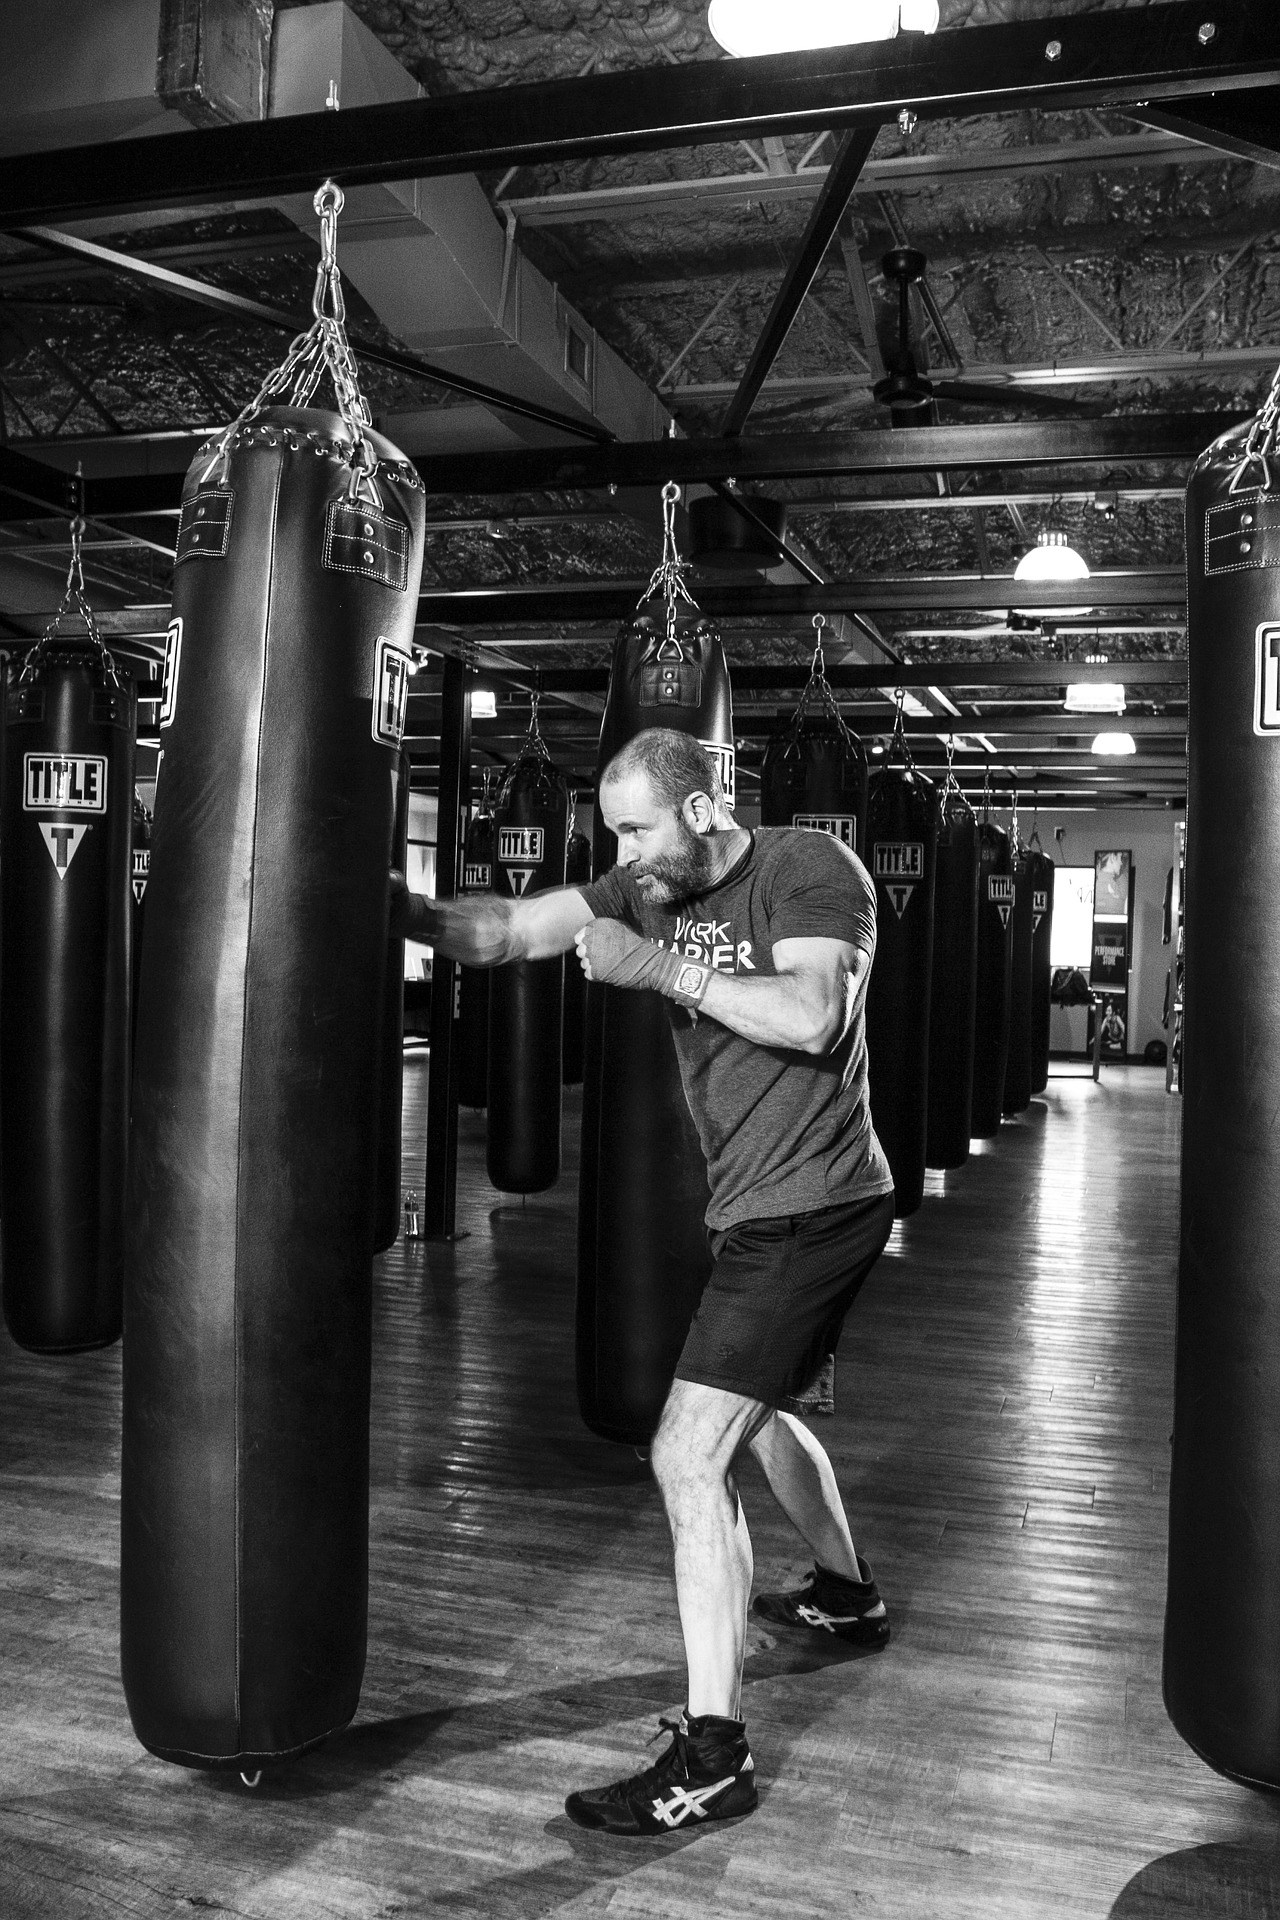 Boxing Ring Wallpaper Hd Practical Guide For Perfecting Your Boxing Stances